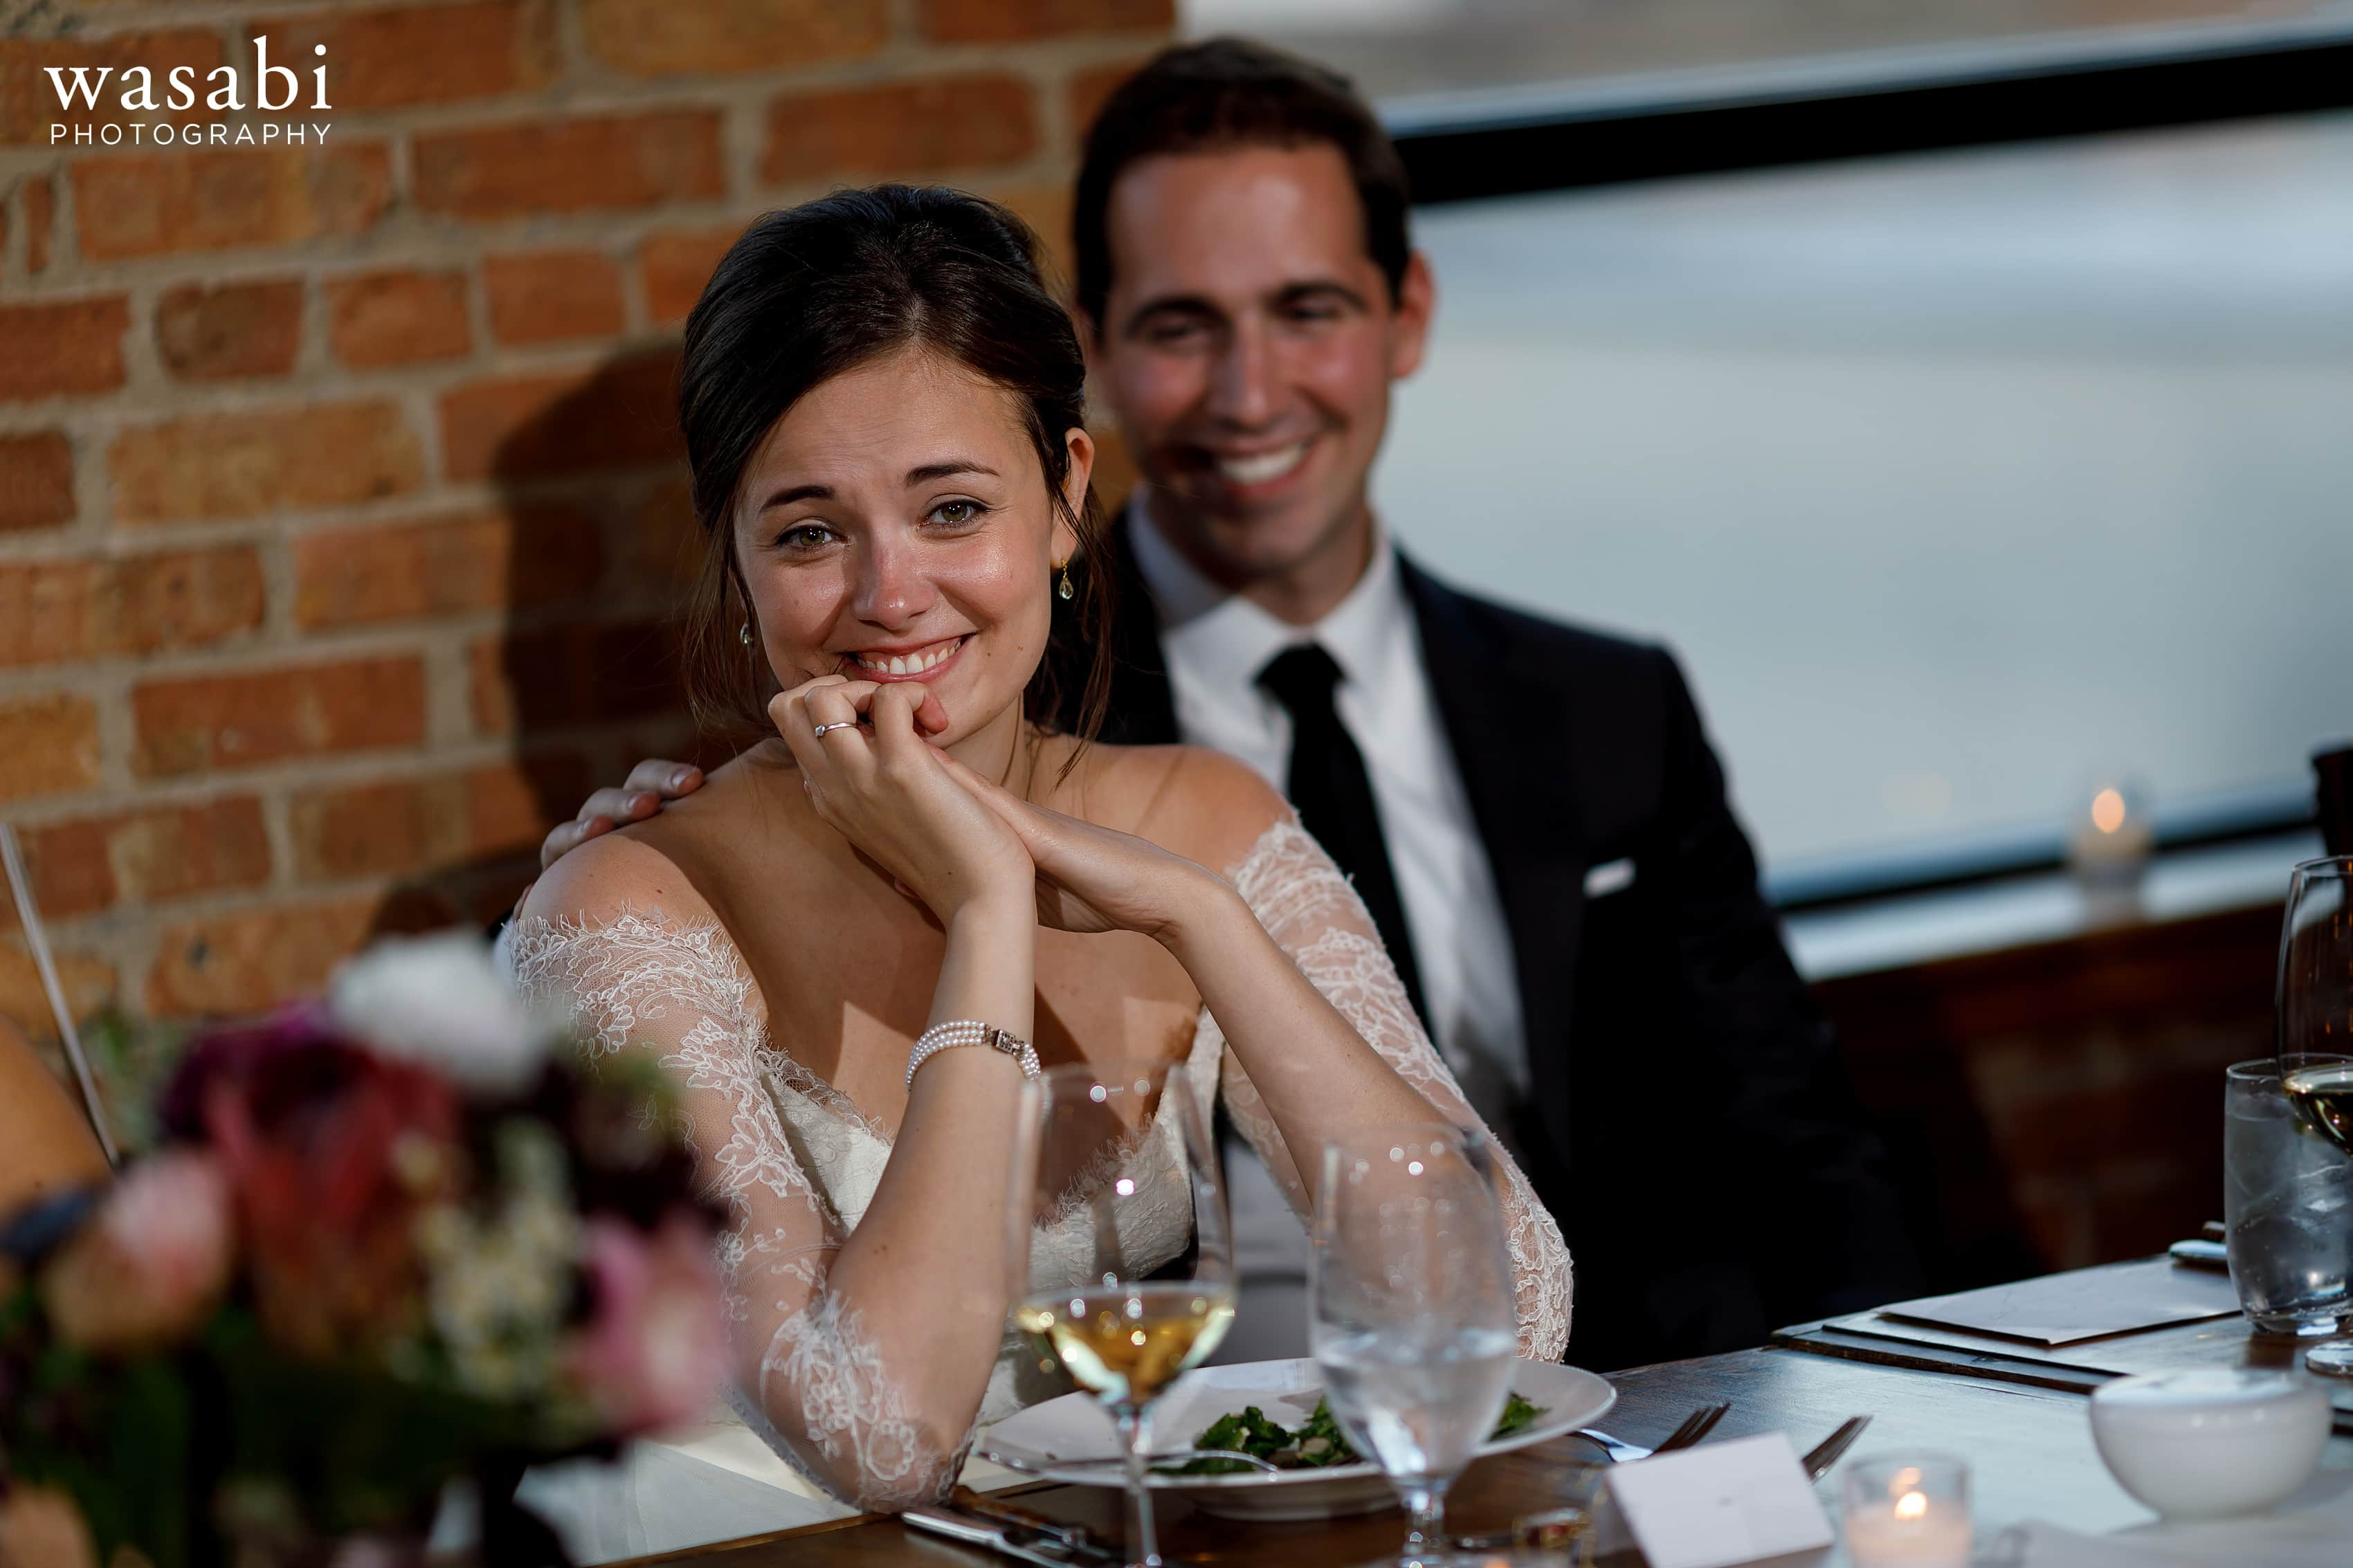 Zoe-and-Justin-listen-to-a-toast-during-a-wedding-reception-at-City-View-Loft-in-Chicago-27